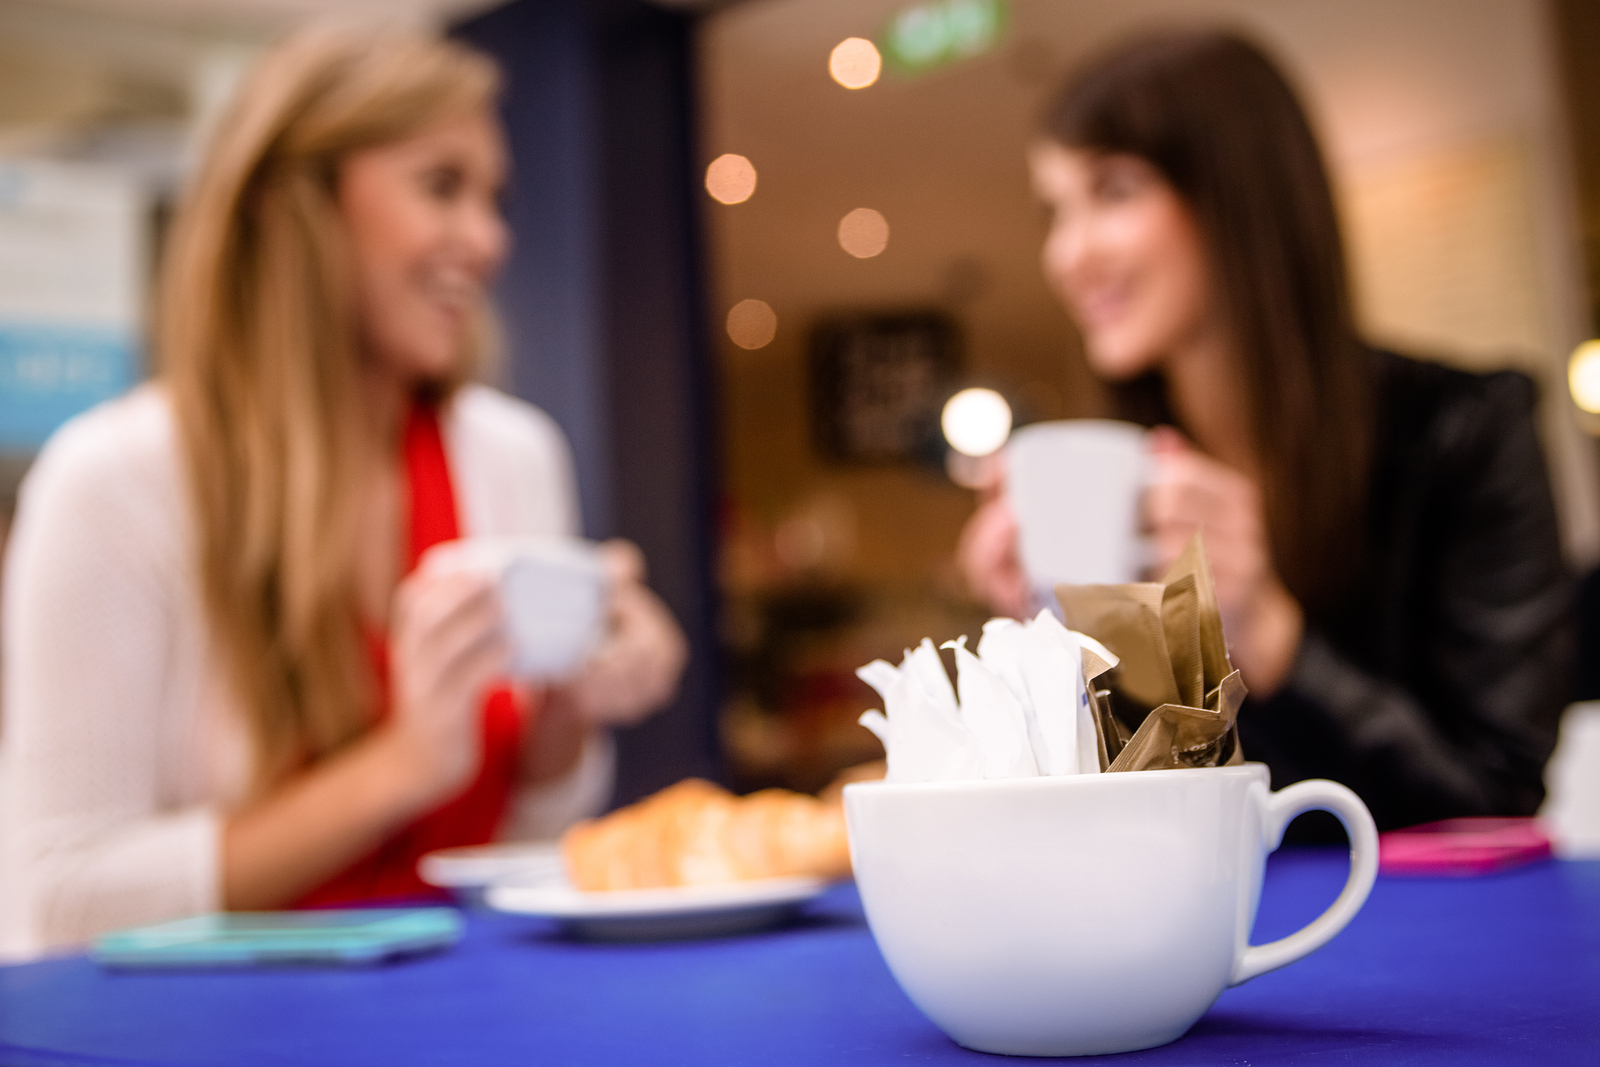 A new comprehensive report shows that artificial sweeteners might actually contribute to weight gain.